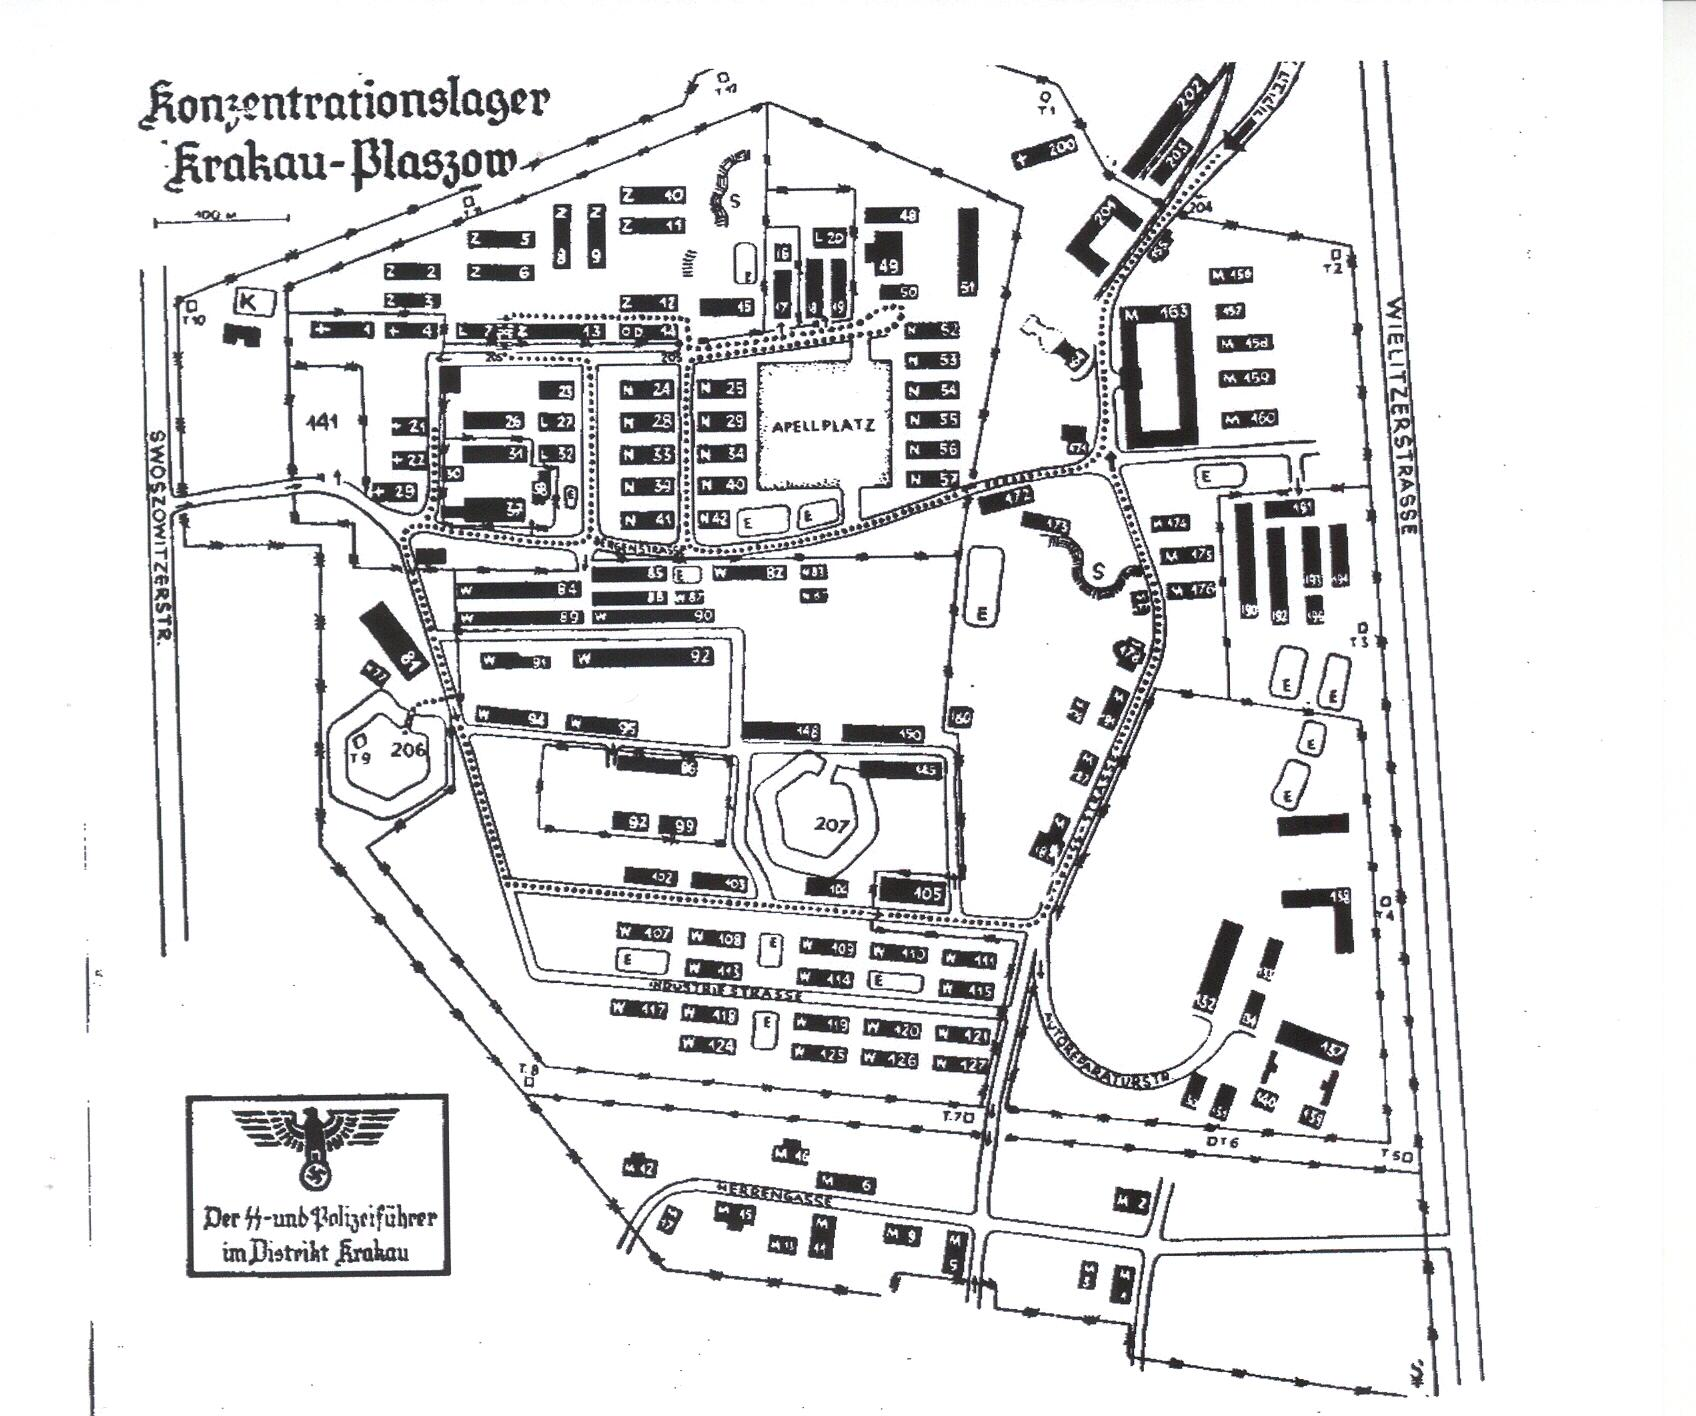 The Joseph & Cyla Bau Story //www.HolocaustResearchProject.org on the outline of the concentration camps, graph of the concentration camps, map of concentration ca ps, map of world war ii concentration camp germany, map of german concentration camps, printable map of germany with concentration camps, map of germany with concentration camps ww2, map of nazi concentration camp locations, map of concentration camps during ww2, gas chambers in concentration camps, us map of concentration camps, map of concentration camps during holocaust, introduction of the concentration camps, map concentration camps in germany, map of concentration camps in europe,